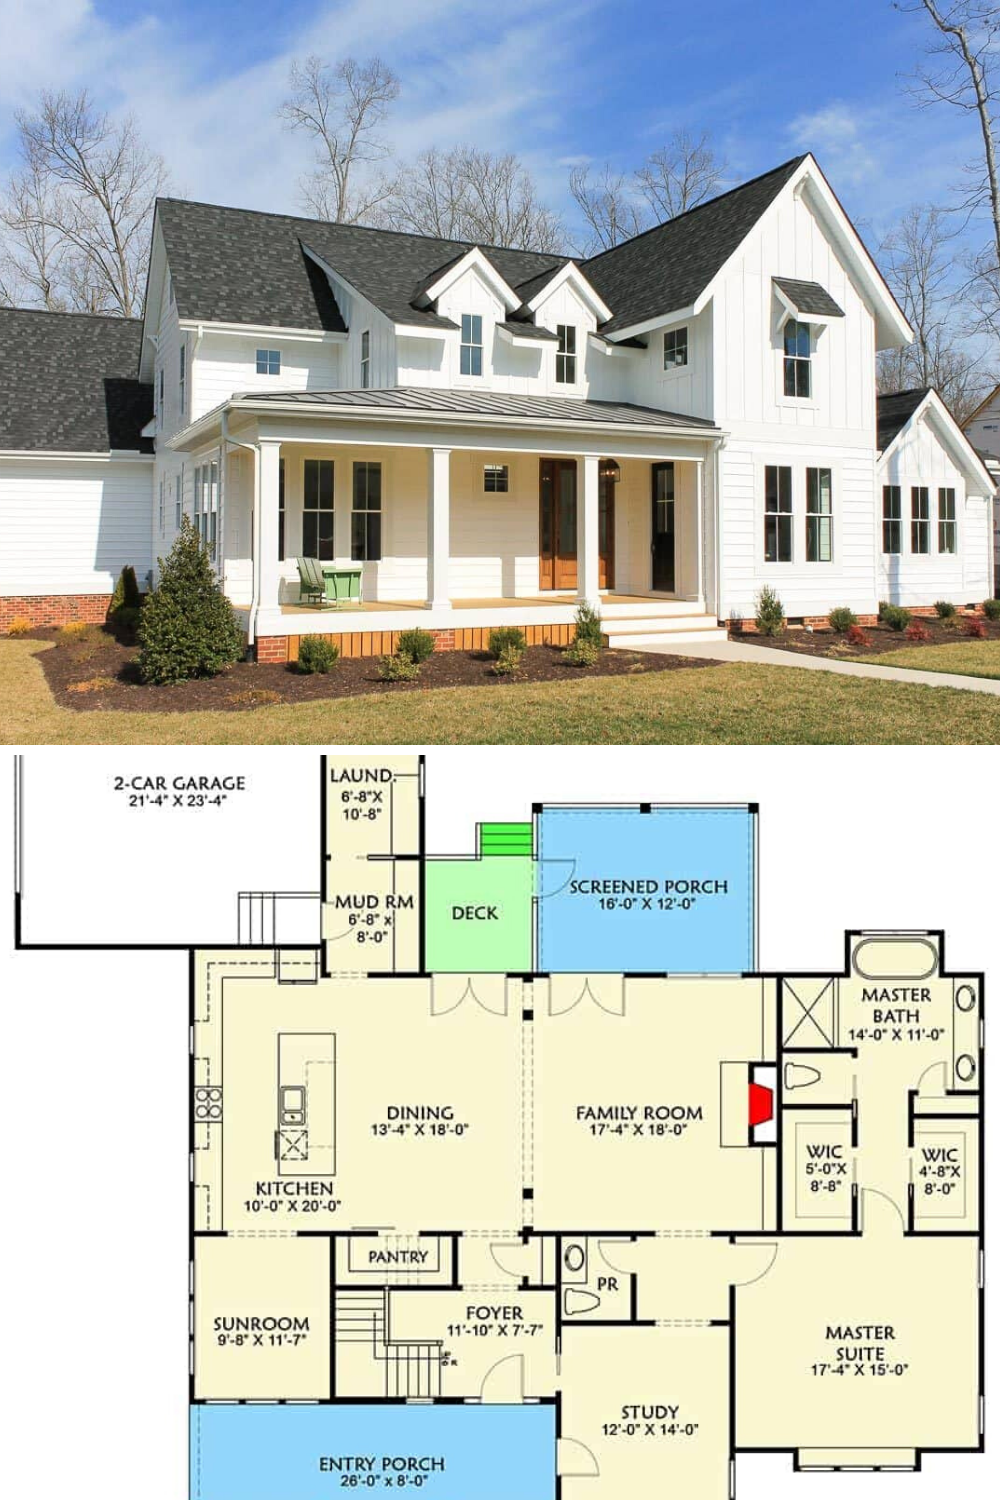 4 Bedroom Two Story Farmhouse With Open Floor Plan Floor Plan Farmhouse Style House Plans Craftsman House Plans Porch House Plans